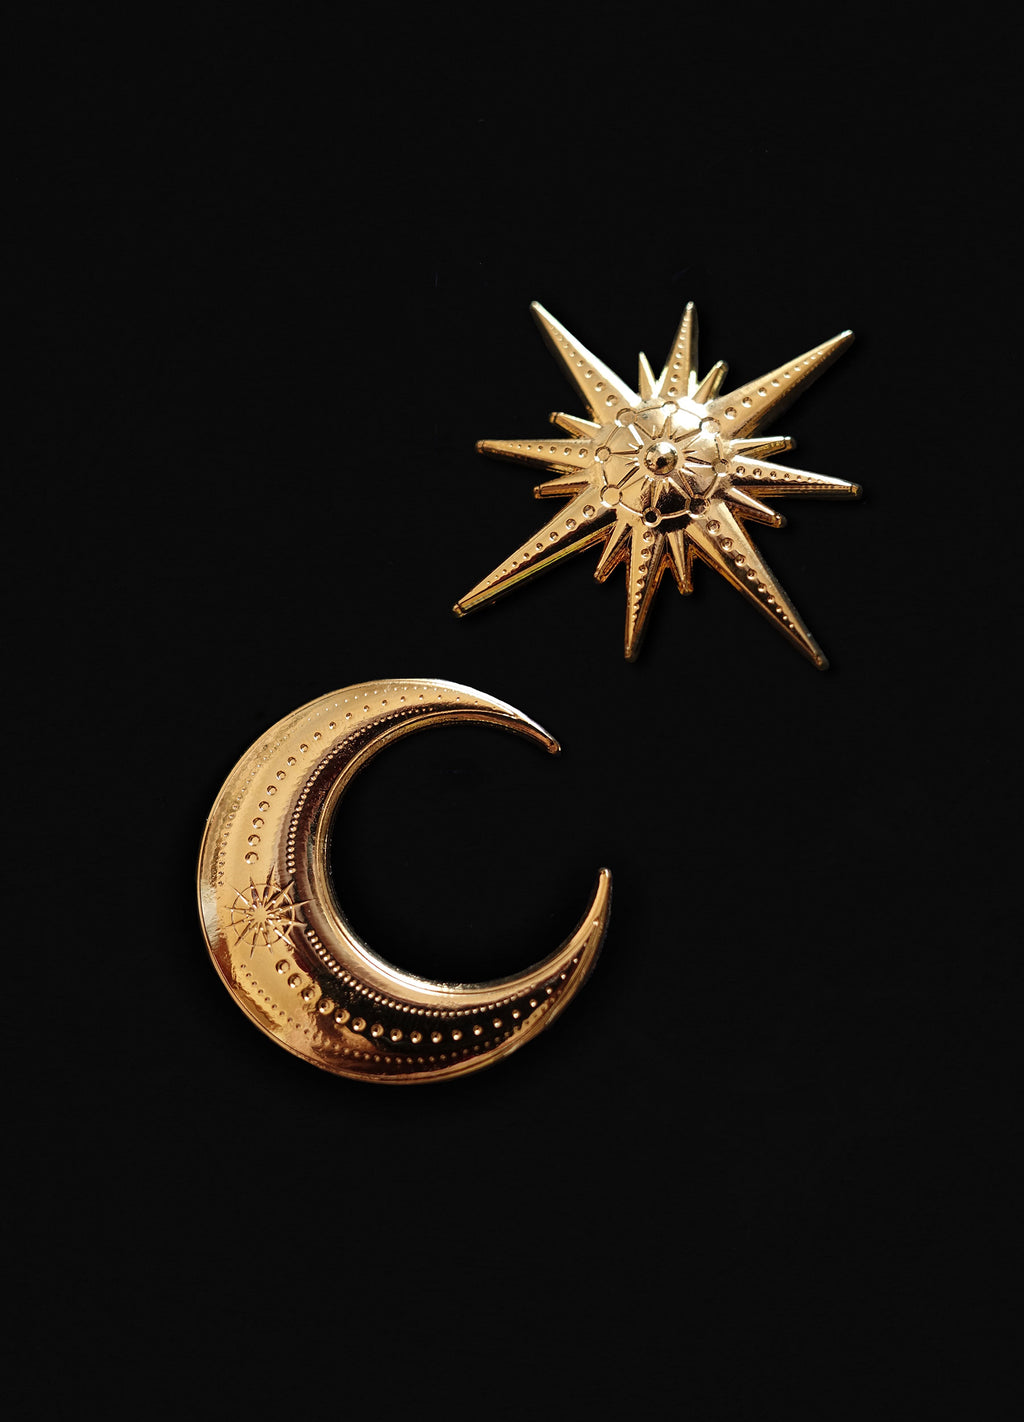 Gold Moon & Star 3D Die Cut Pins by Cocorrina & Co Shop